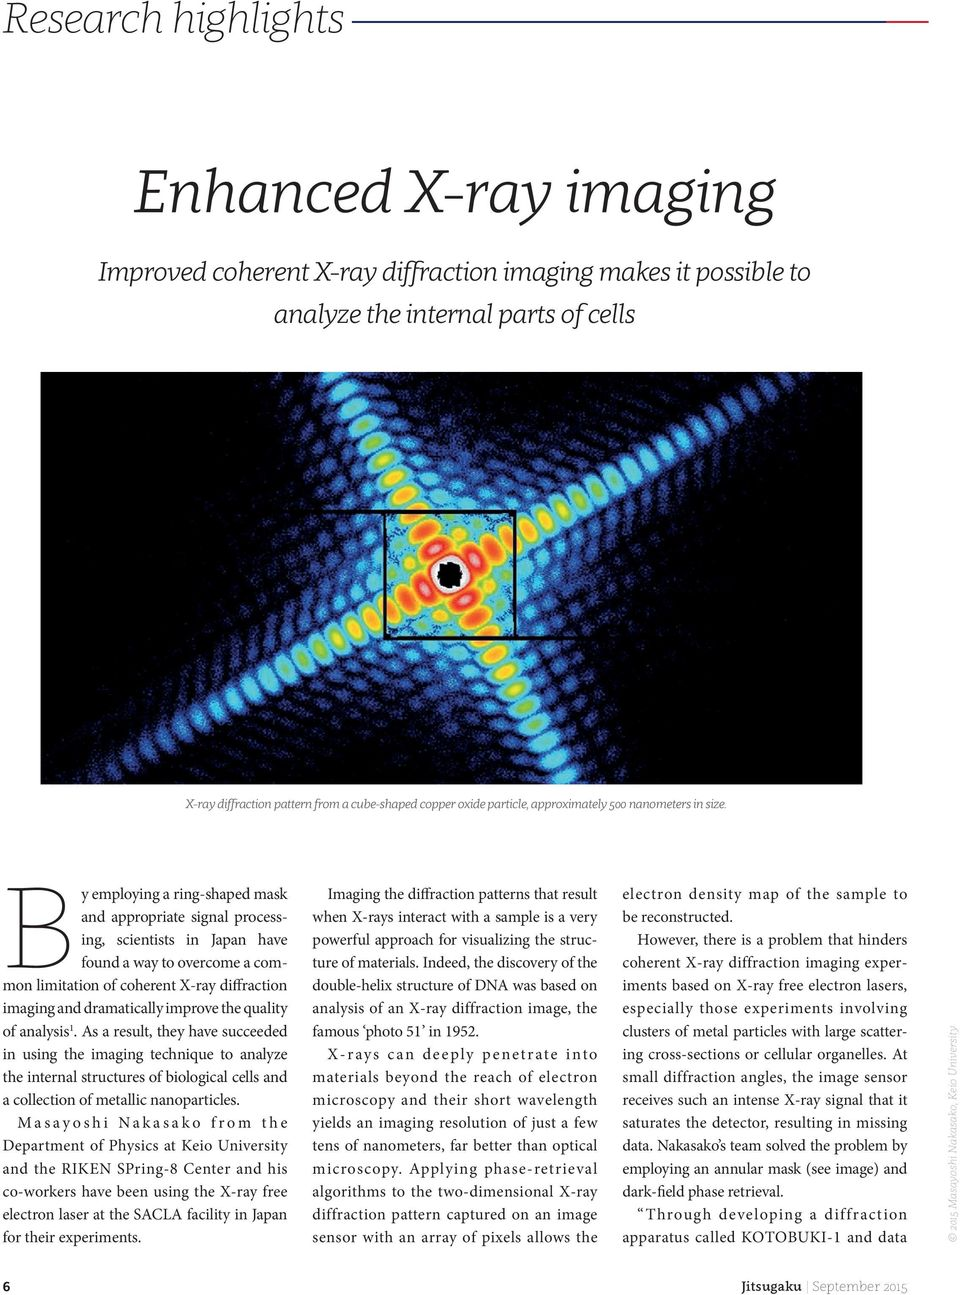 By employing a ring-shaped mask and appropriate signal processing, scientists in Japan have found a way to overcome a common limitation of coherent X-ray diffraction imaging and dramatically improve